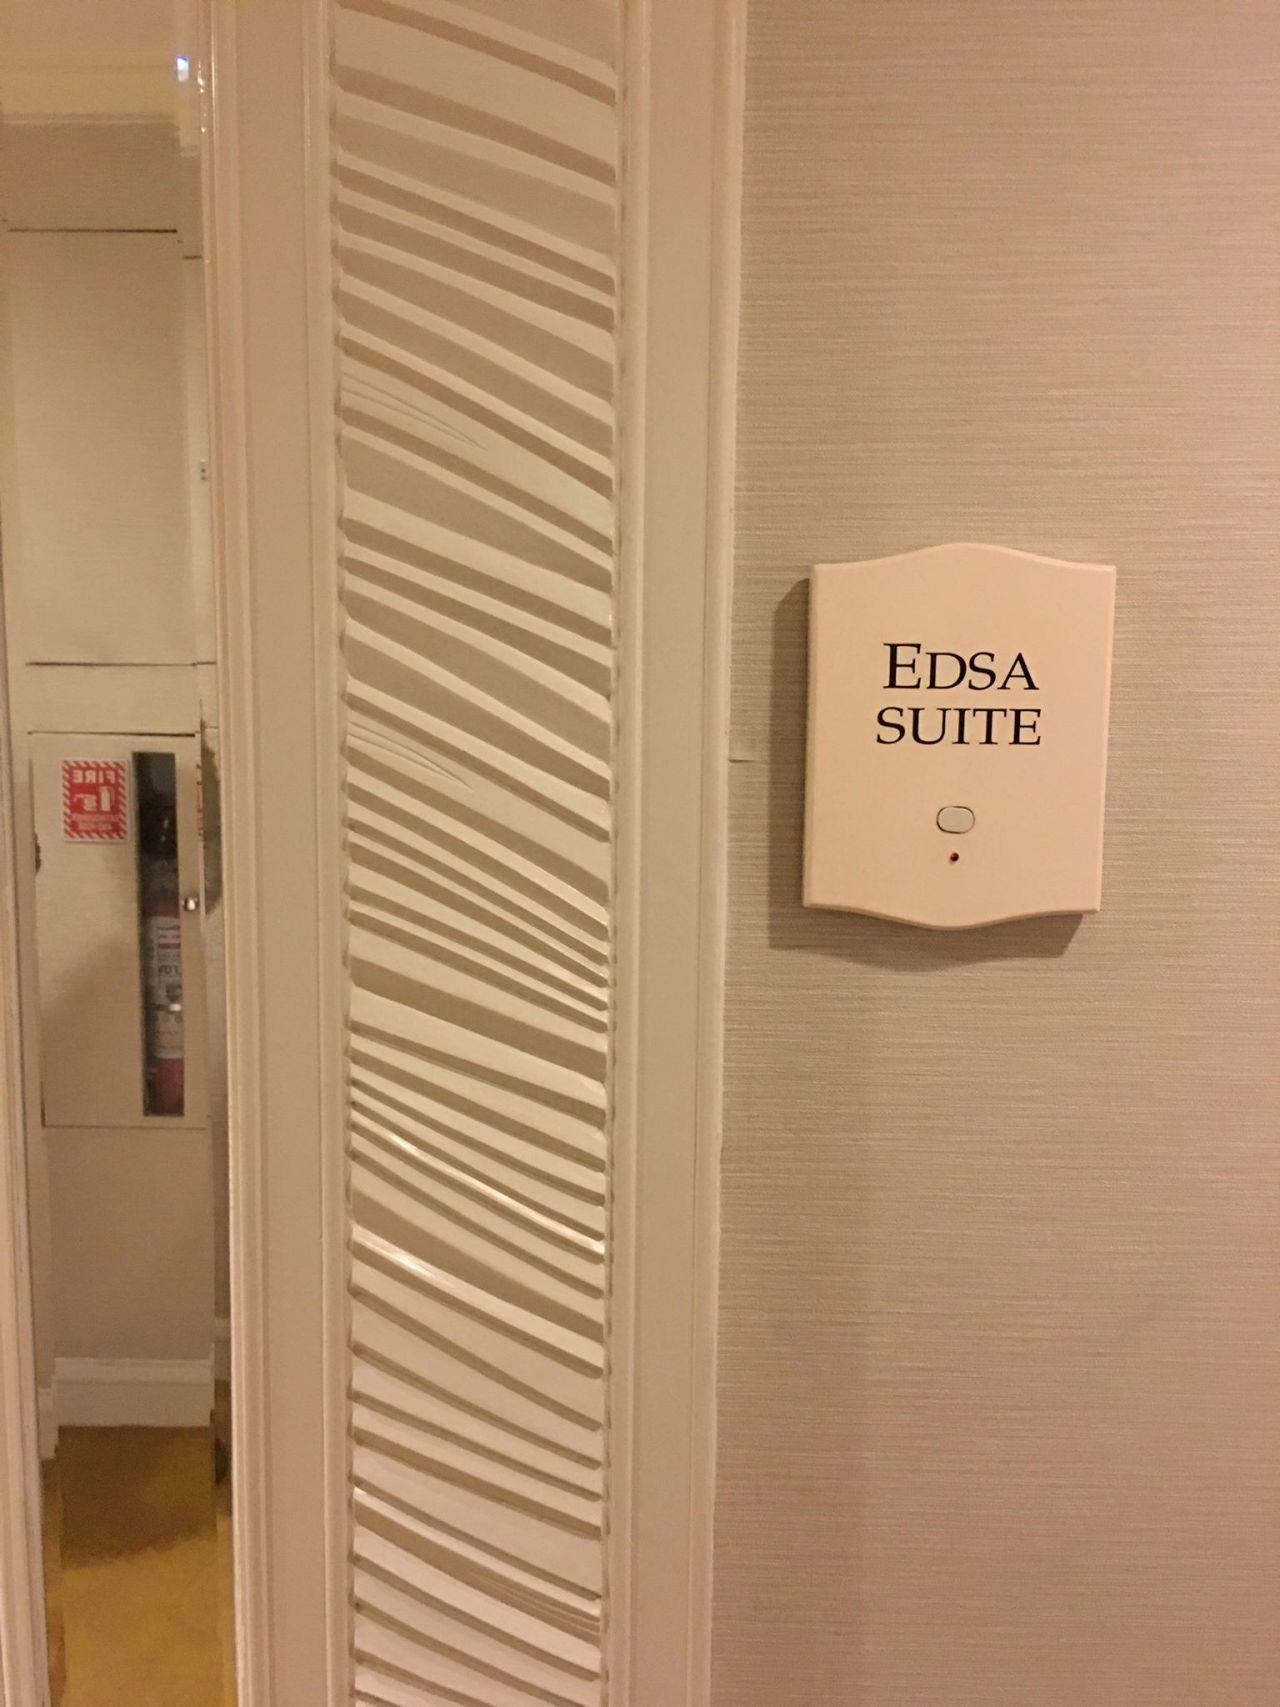 The most expensive suite at the EDSA Shangri-la Hotel- the Edsa Suite